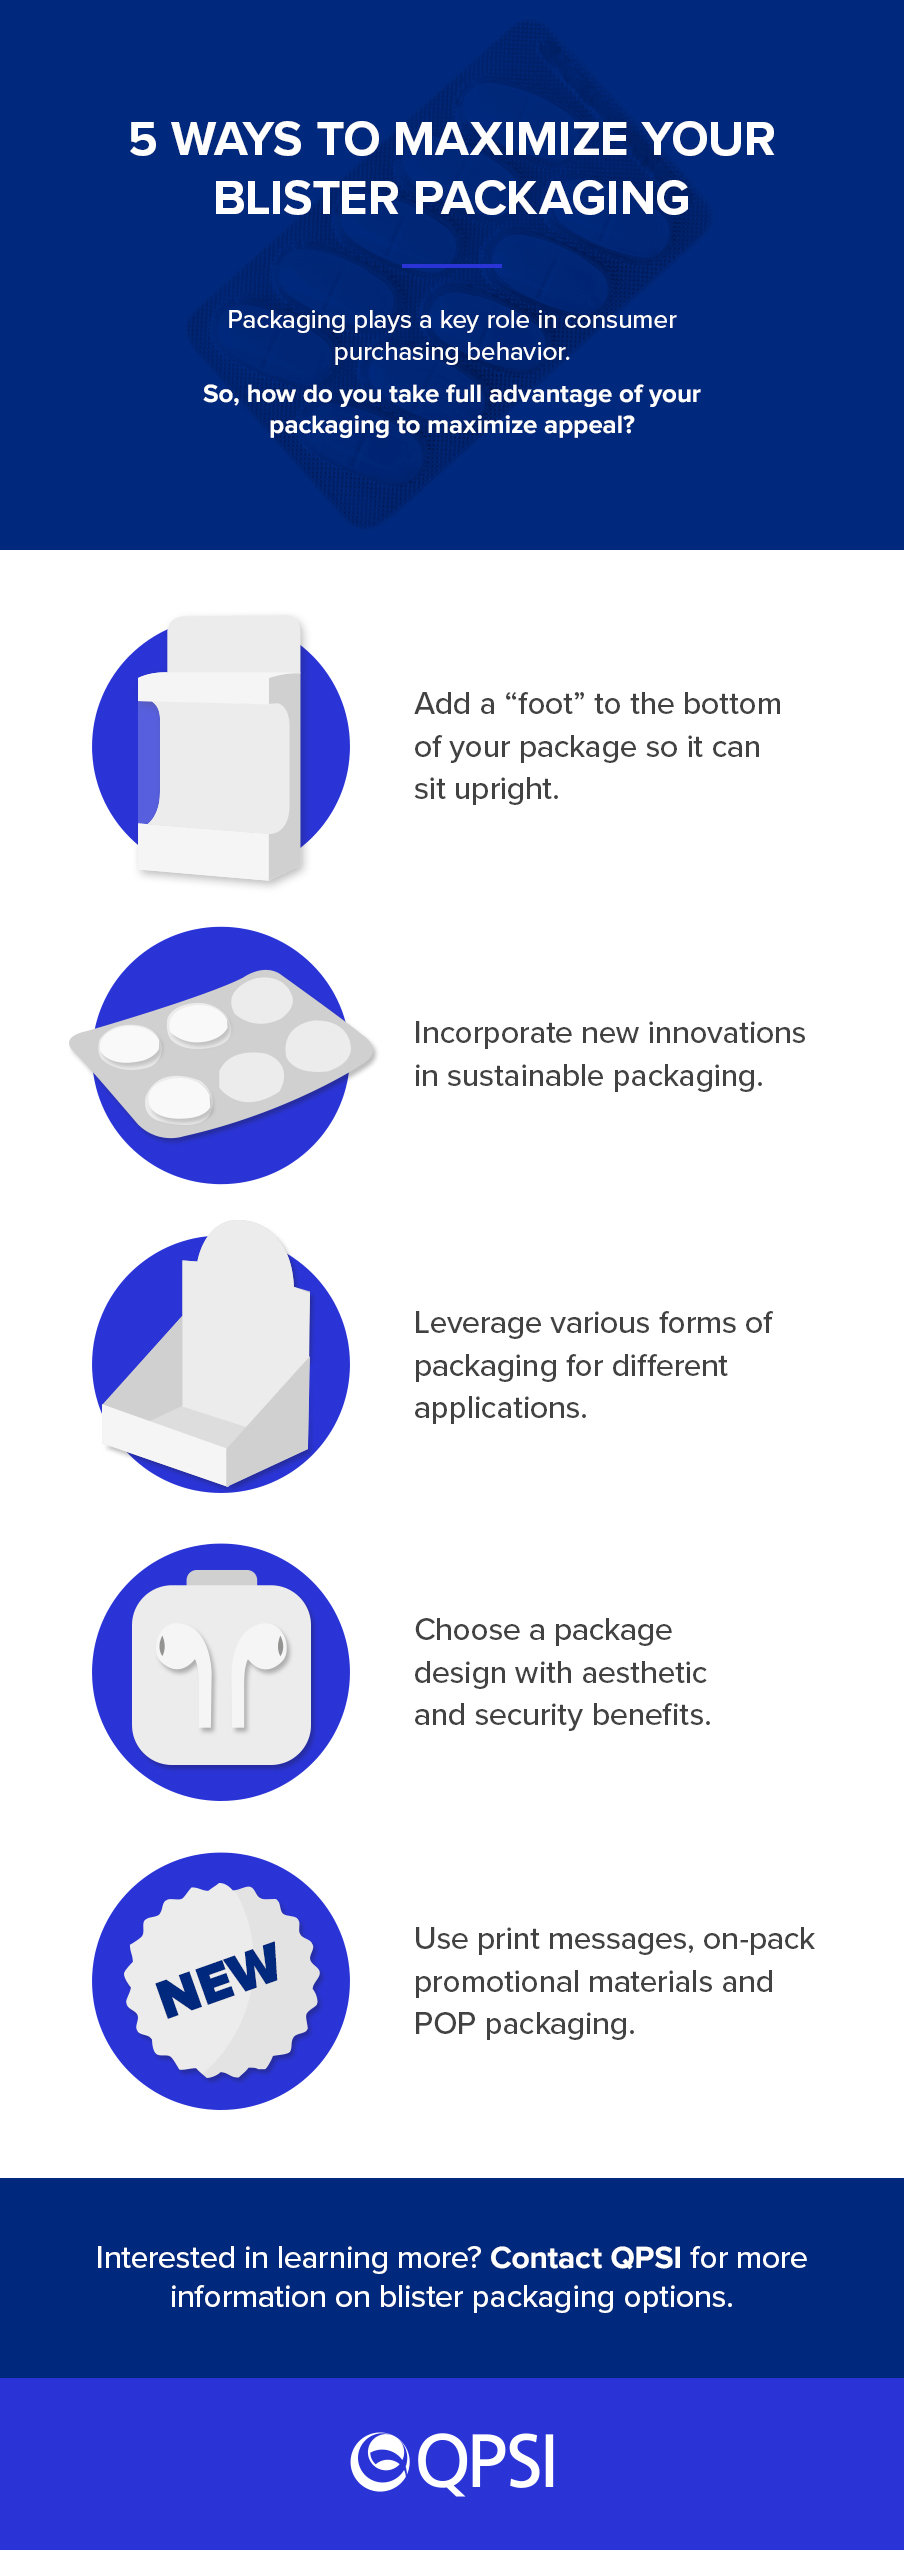 5 Ways to Maximize Your Blister Packaging Infographic